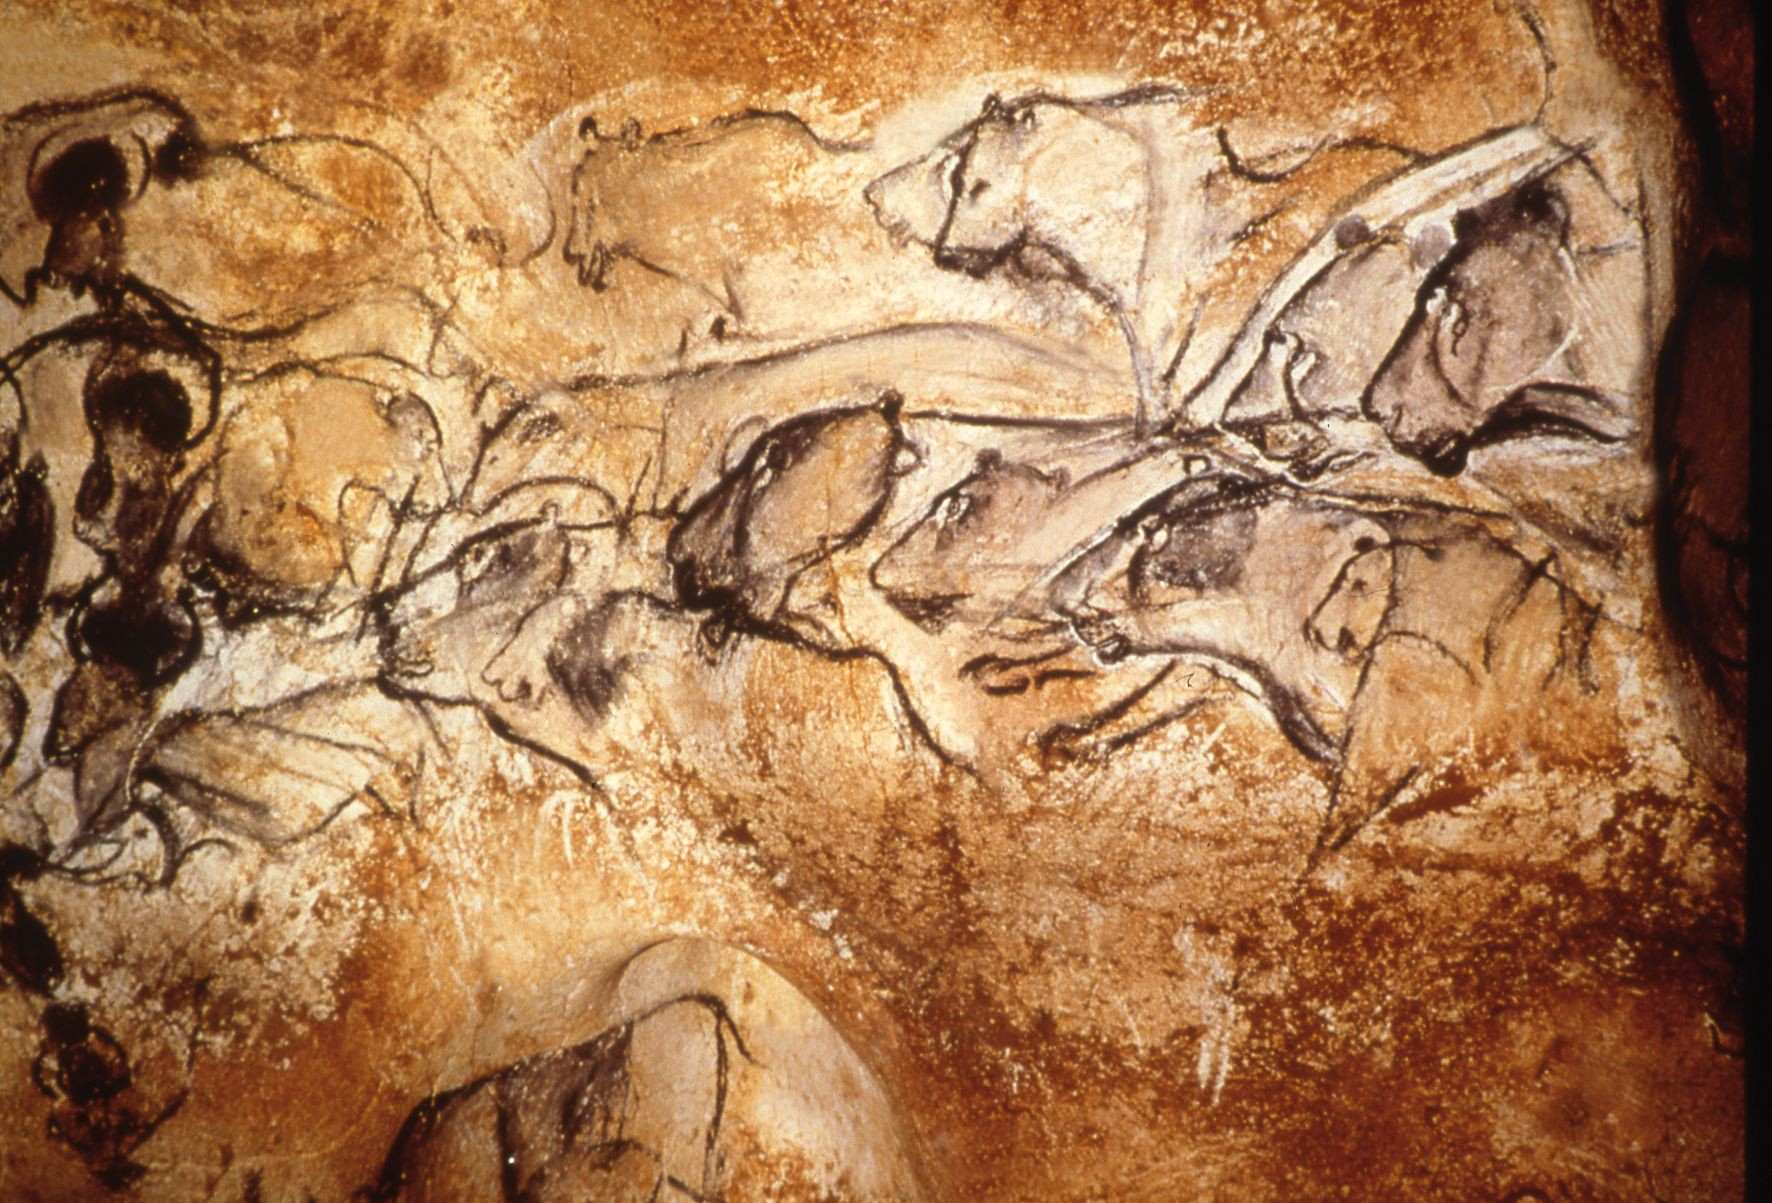 Paleolithic Cave Paintings Appear to be the Earliest Examples of Sequential Animation and Graphic Narrative